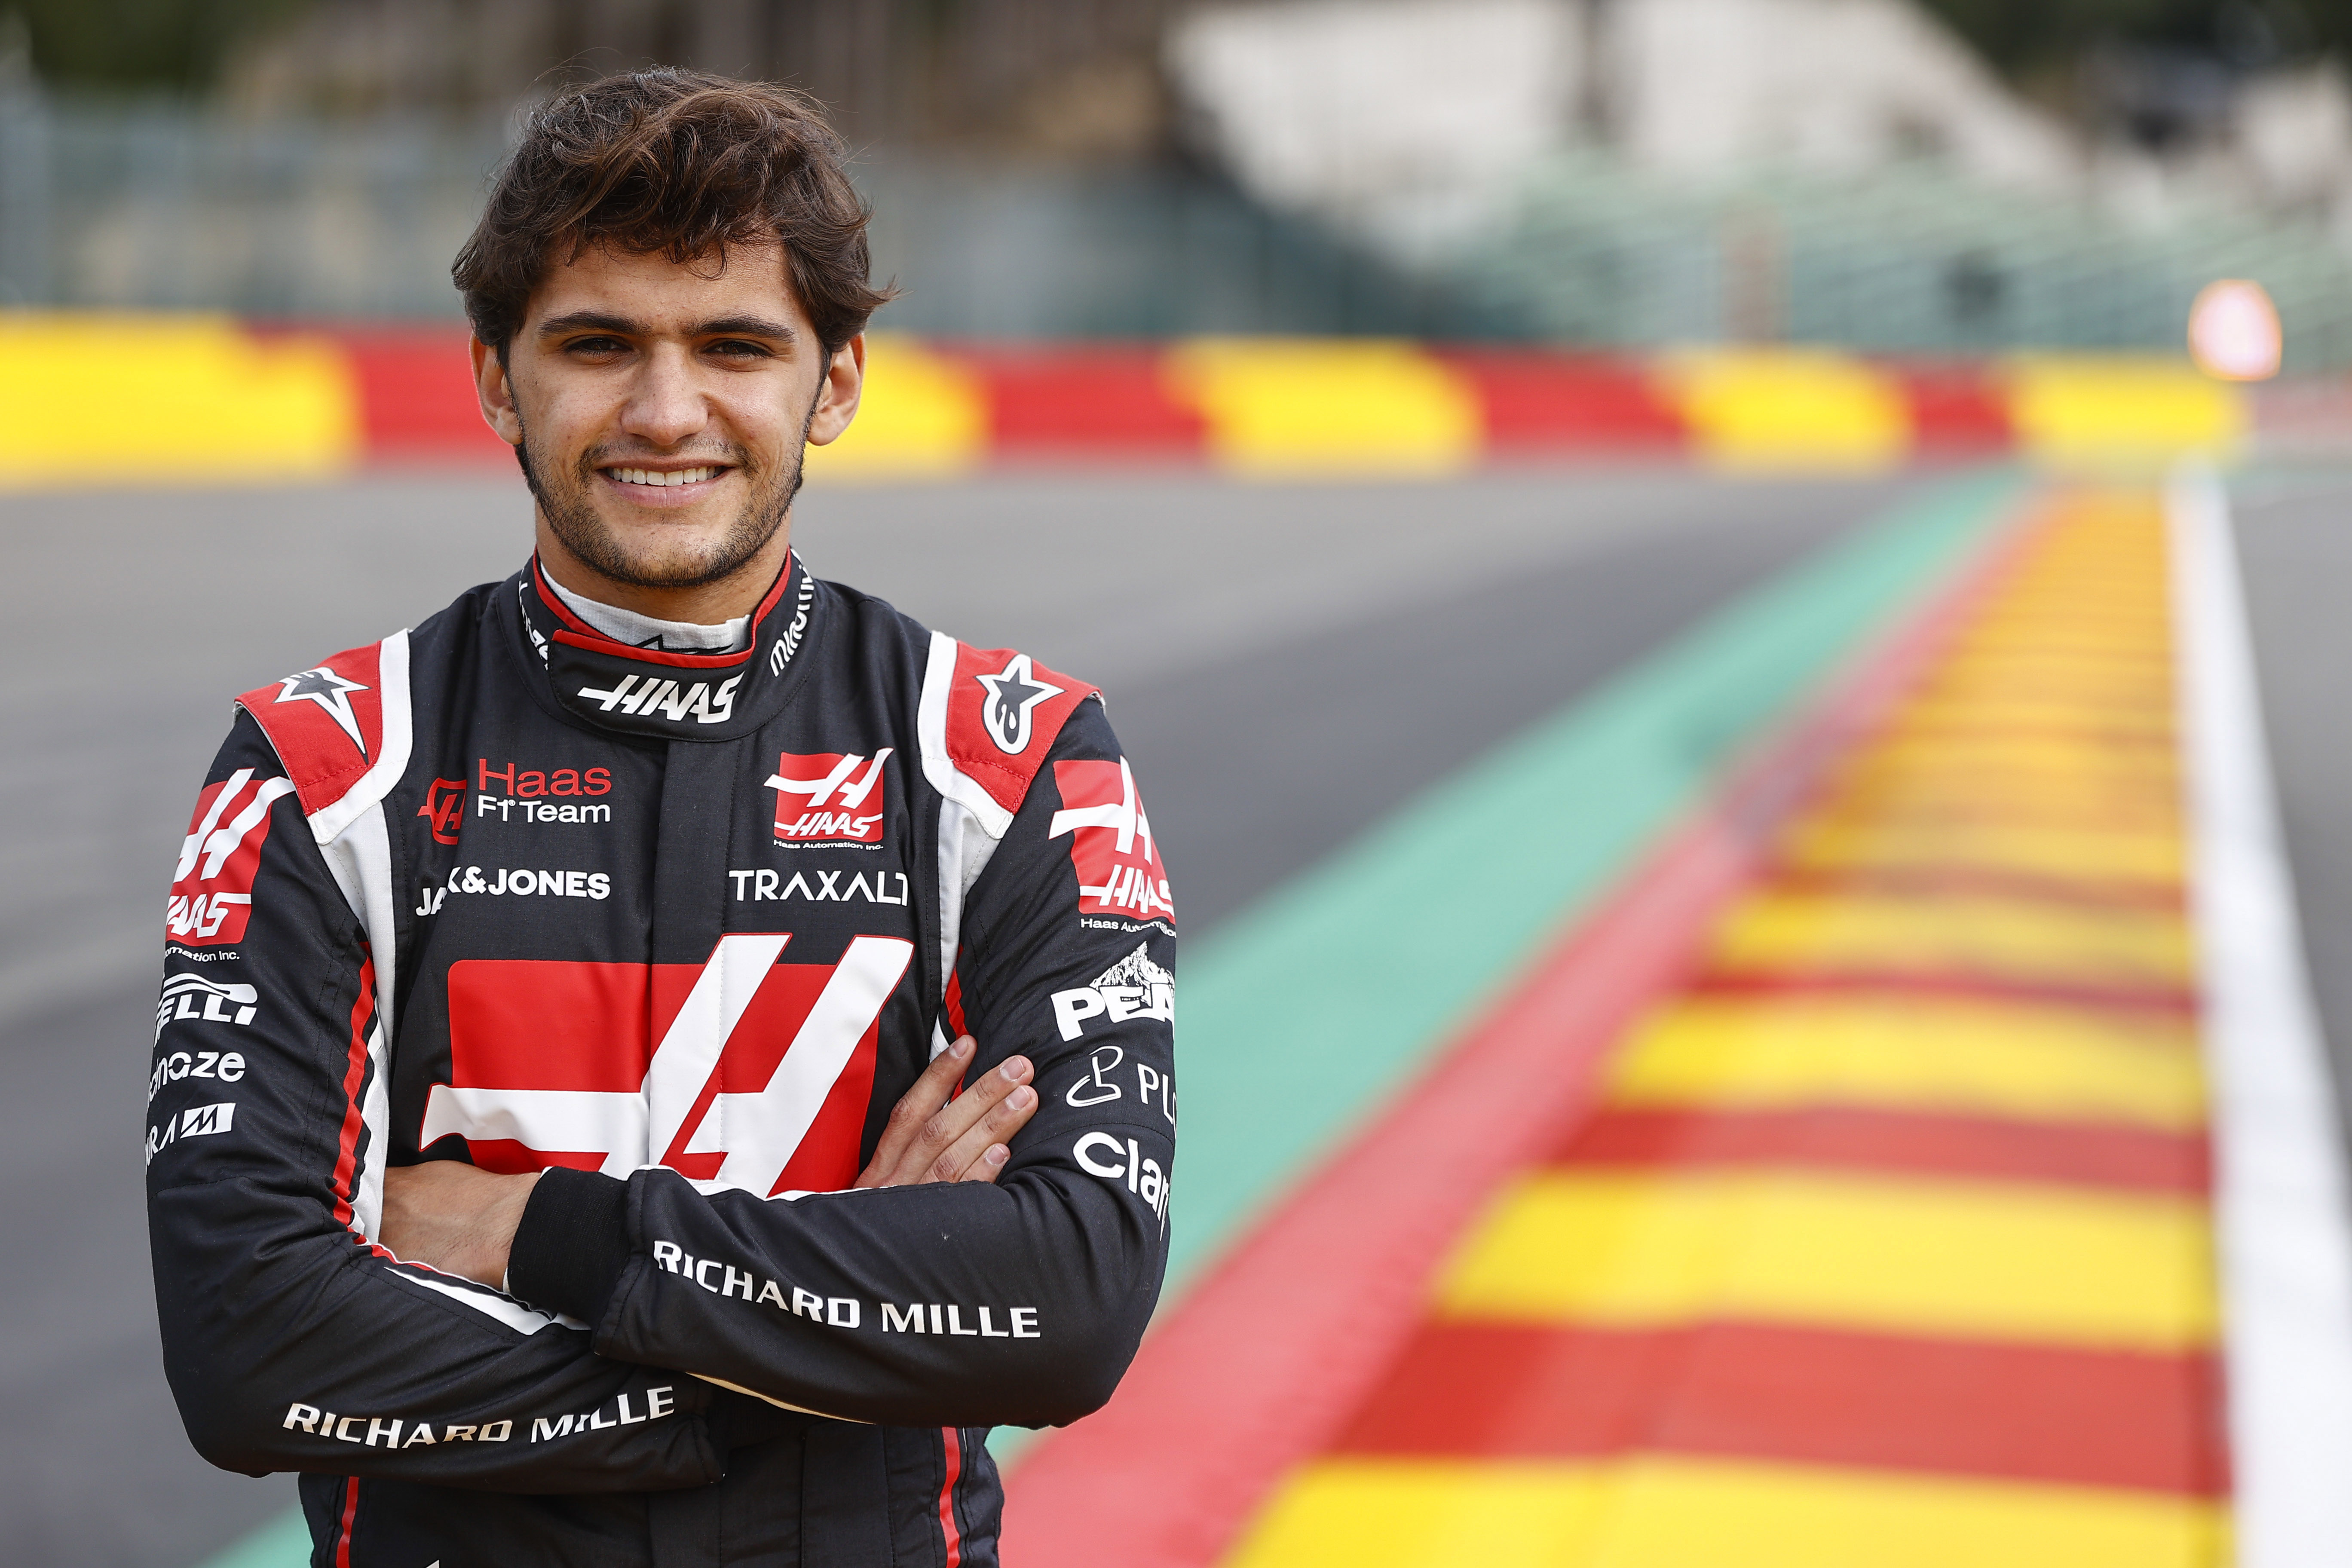 Pietro Fittipaldi is racing in the F1 this  weekend